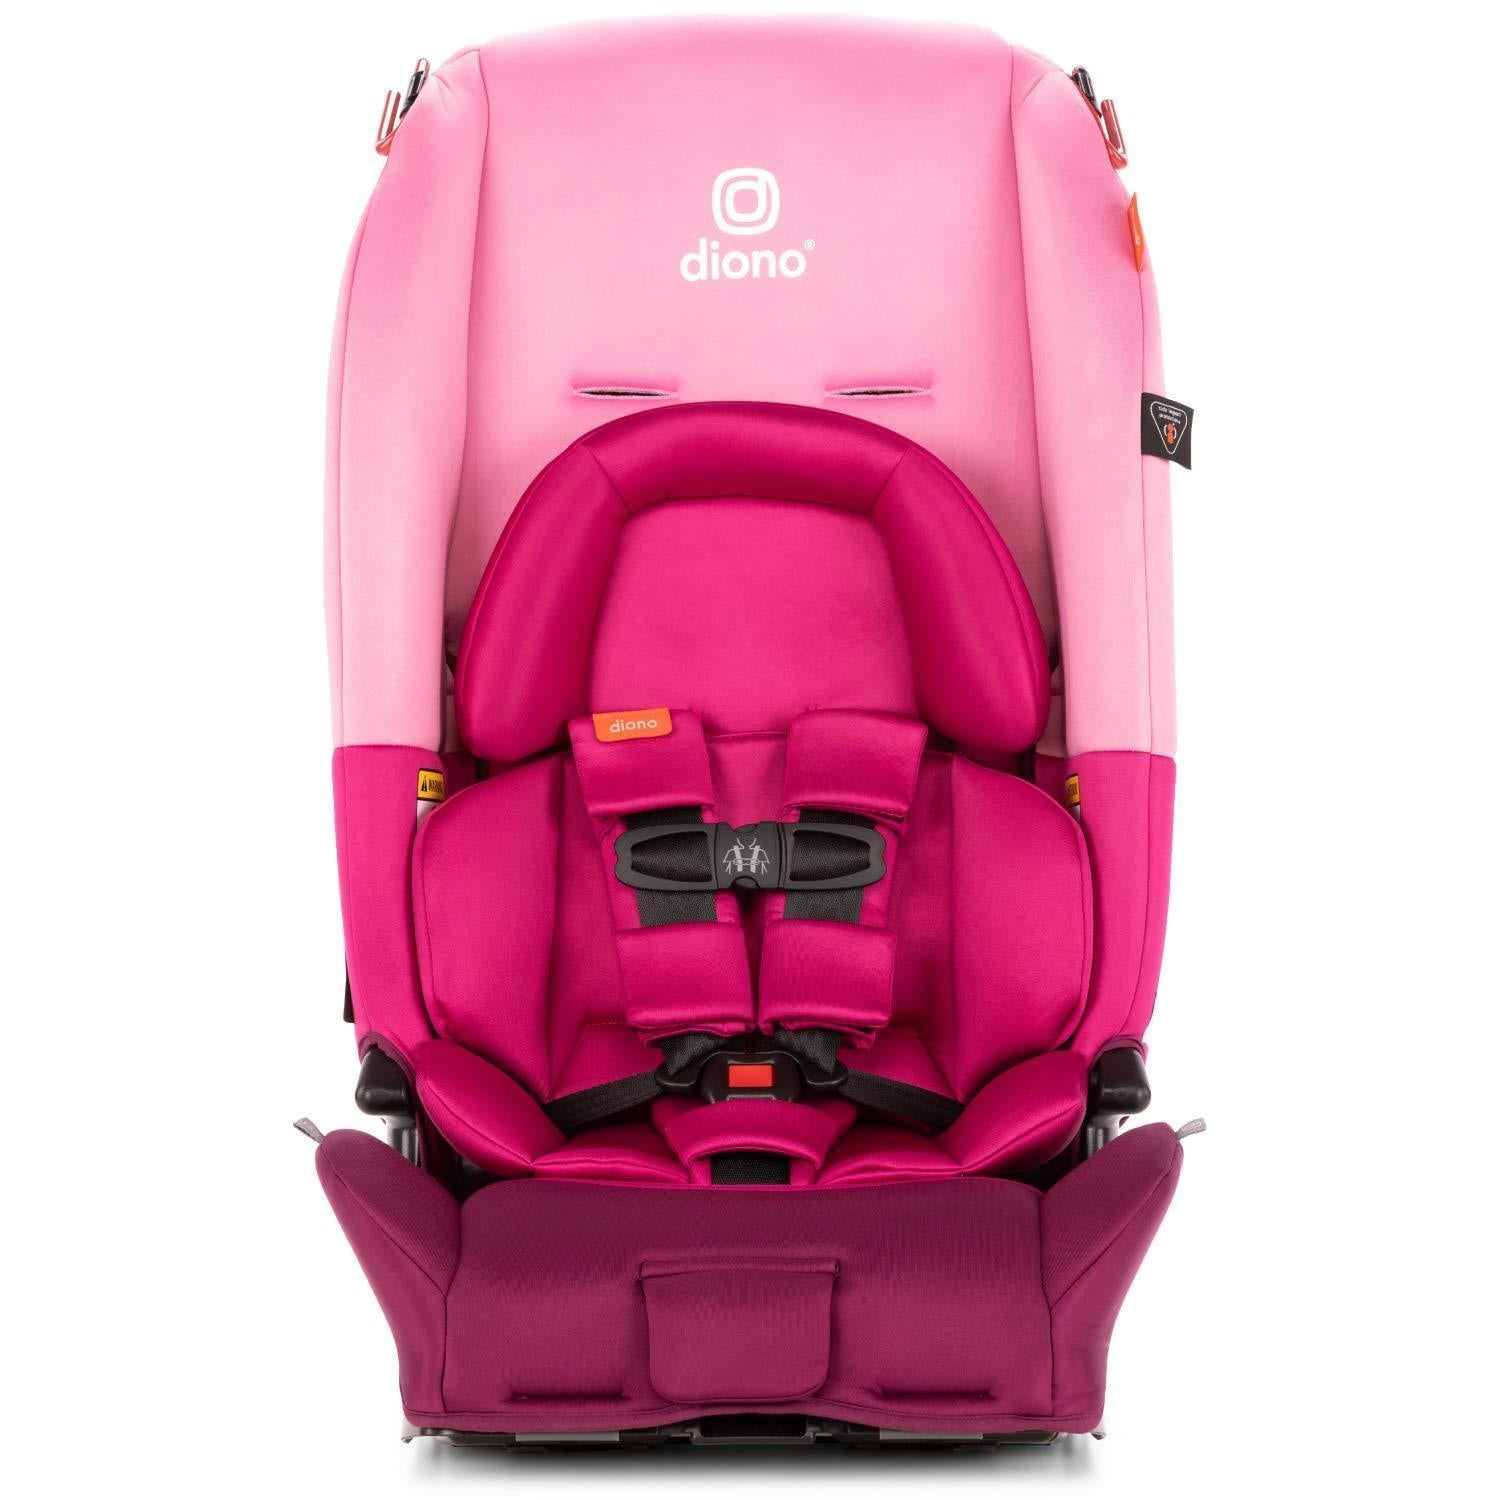 Diono Radian 3 RX All-in-One Convertible Car Seat - Pink